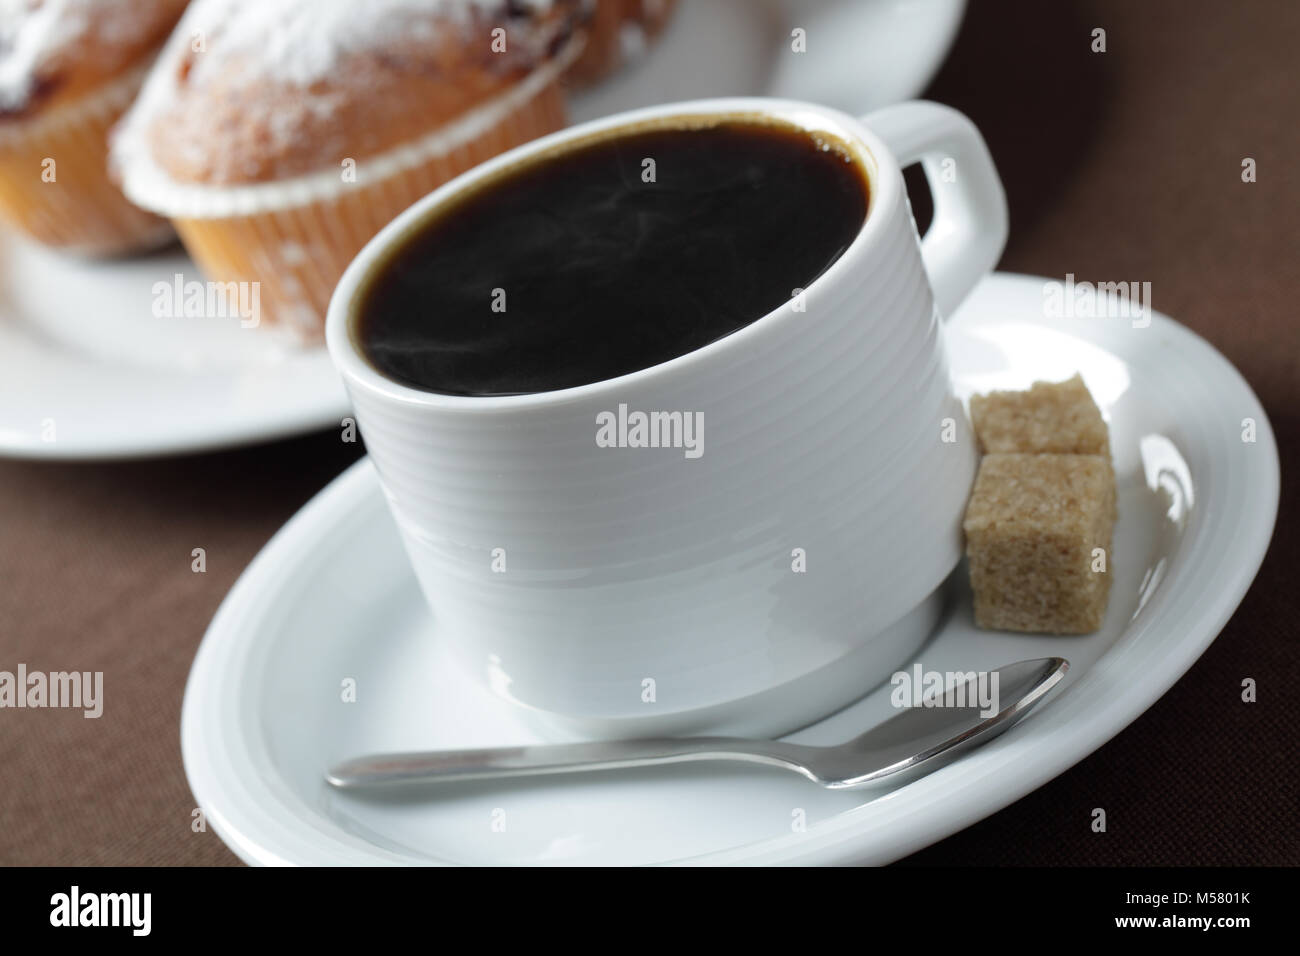 Cup of black coffee against muffins - Stock Image